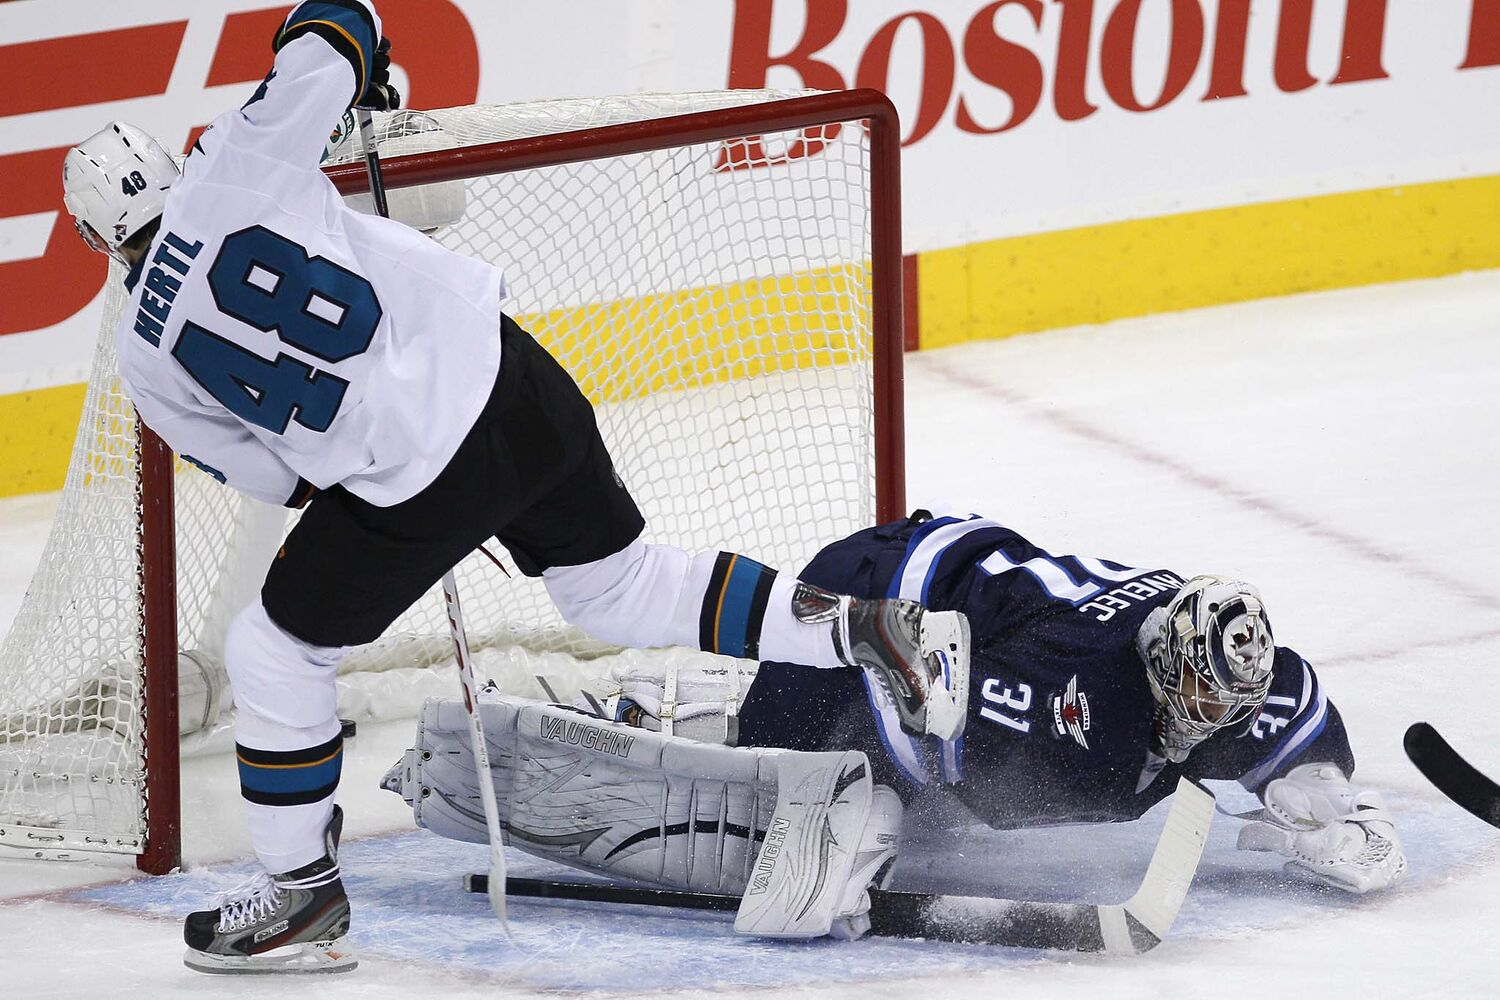 San Jose Sharks' Tomas Hertl (48) scores on the breakaway against Winnipeg Jets' goaltender Ondrej Pavelec (31) during the first period. (JOHN WOODS / WINNIPEG FREE PRESS)